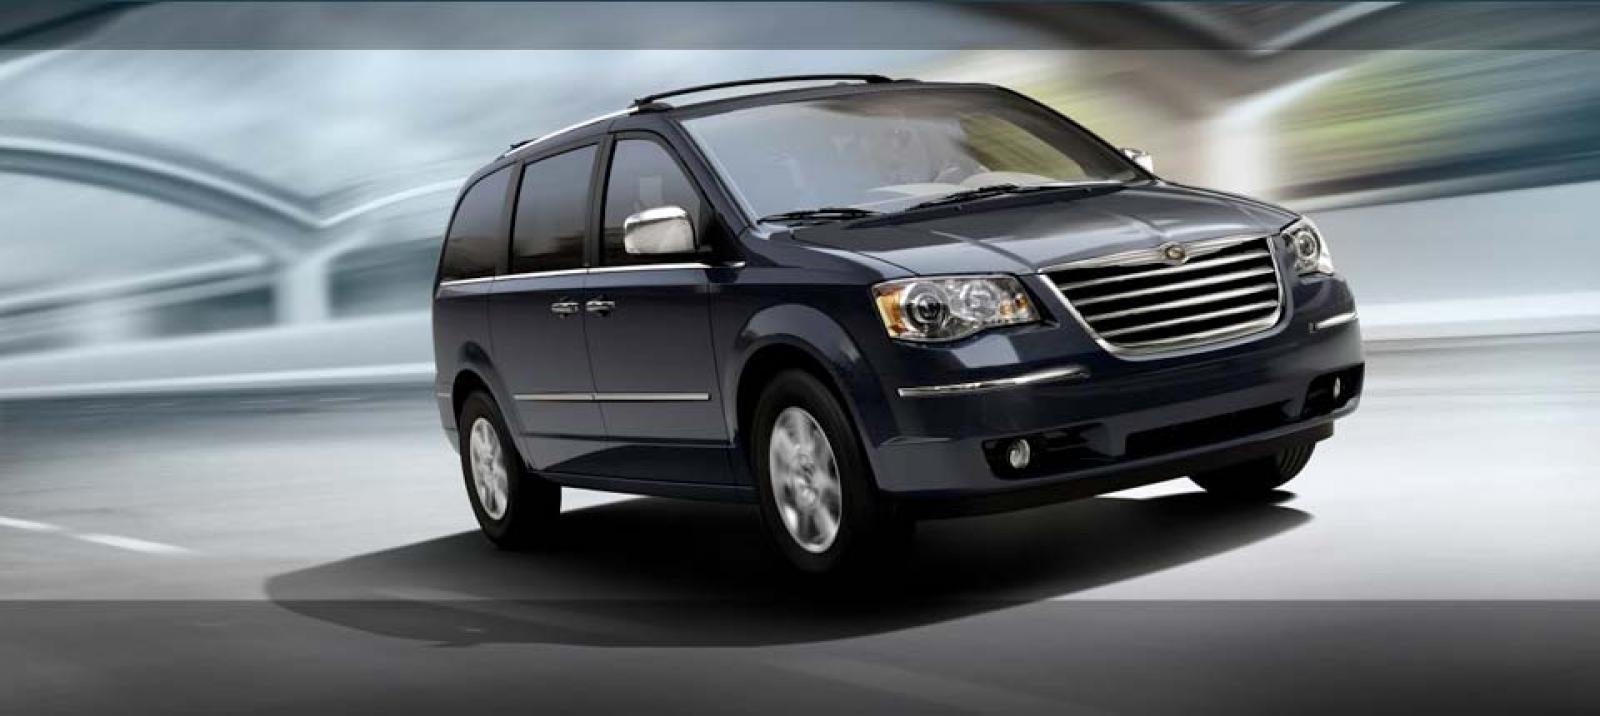 2010 Chrysler Town And Country Information And Photos Zombiedrive